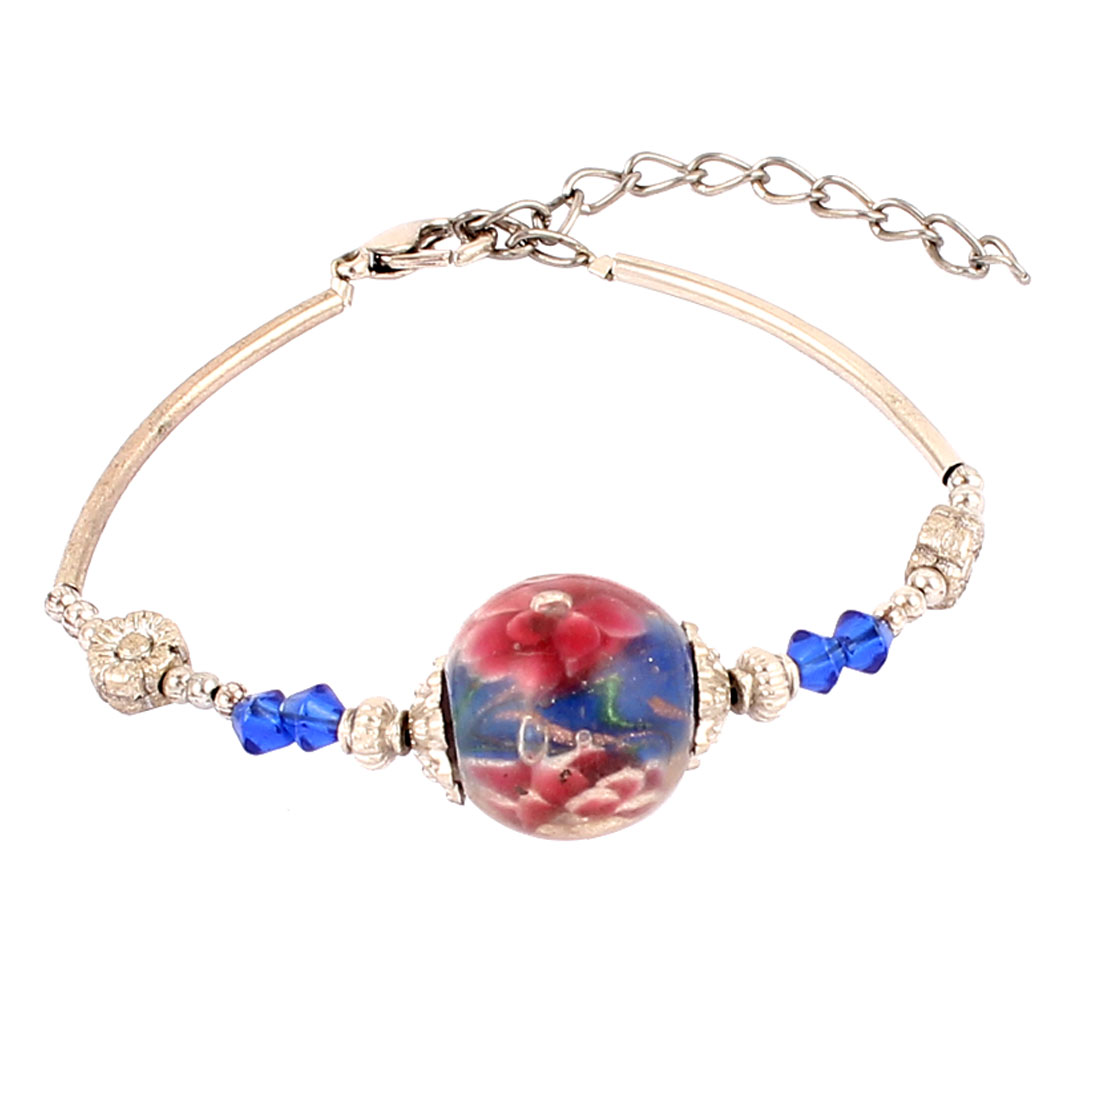 Women Lobster Clasp Link Round Bead Accent Wrist Ornament Bracelet Bangle Dark Blue